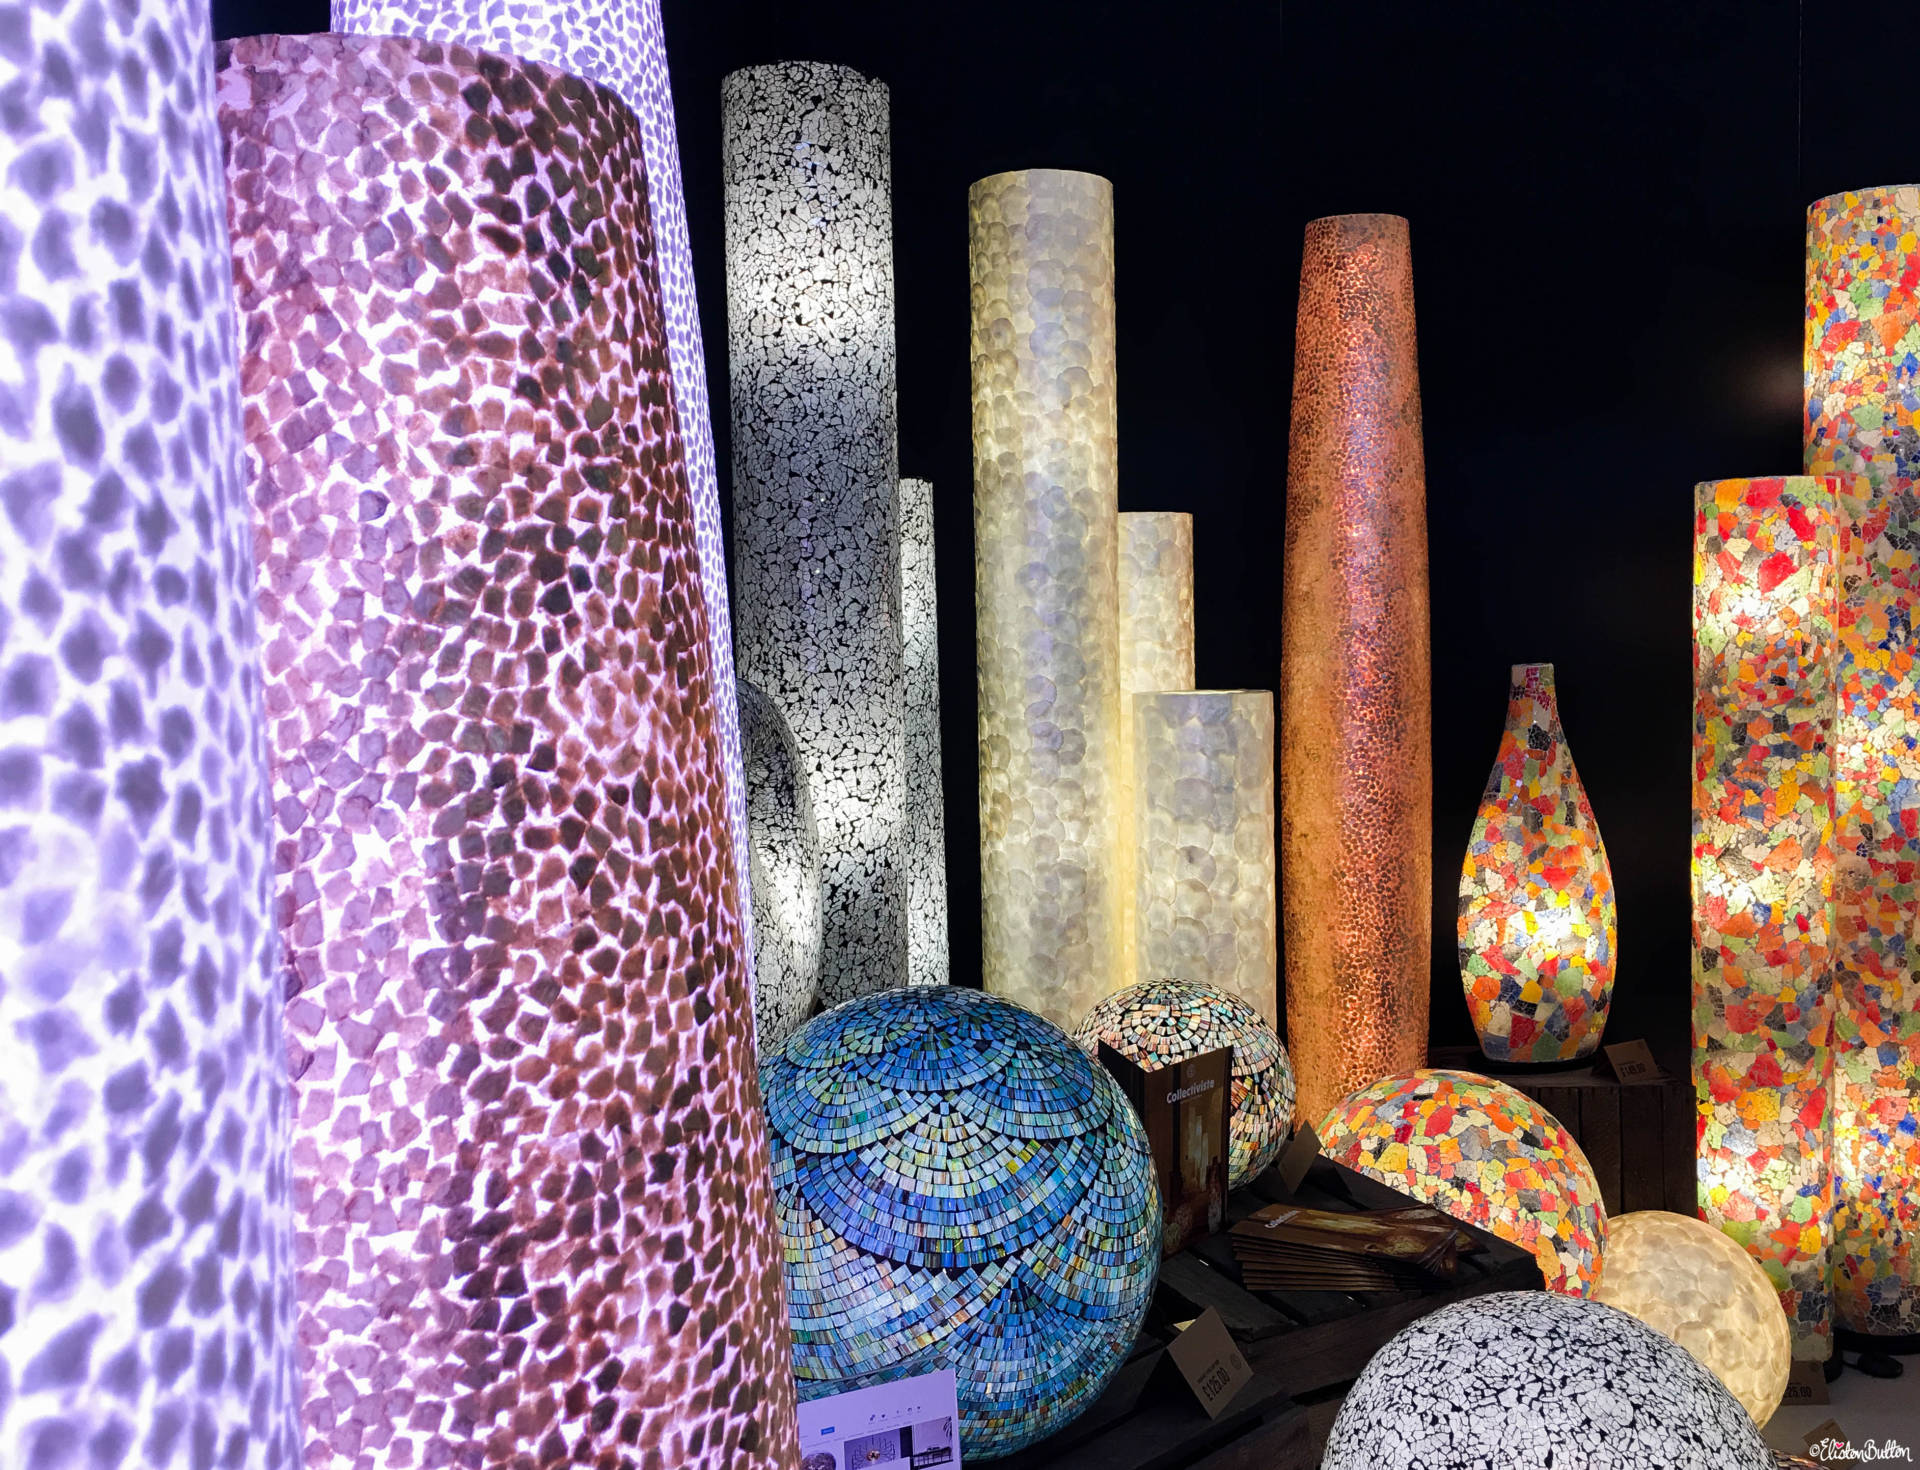 Collectiviste Coloured Mosaic Lighting at Grand Designs Live 2017 with Eliston Button - Grand Designs Live 2017 – Part One at www.elistonbutton.com - Eliston Button - That Crafty Kid – Art, Design, Craft & Adventure.